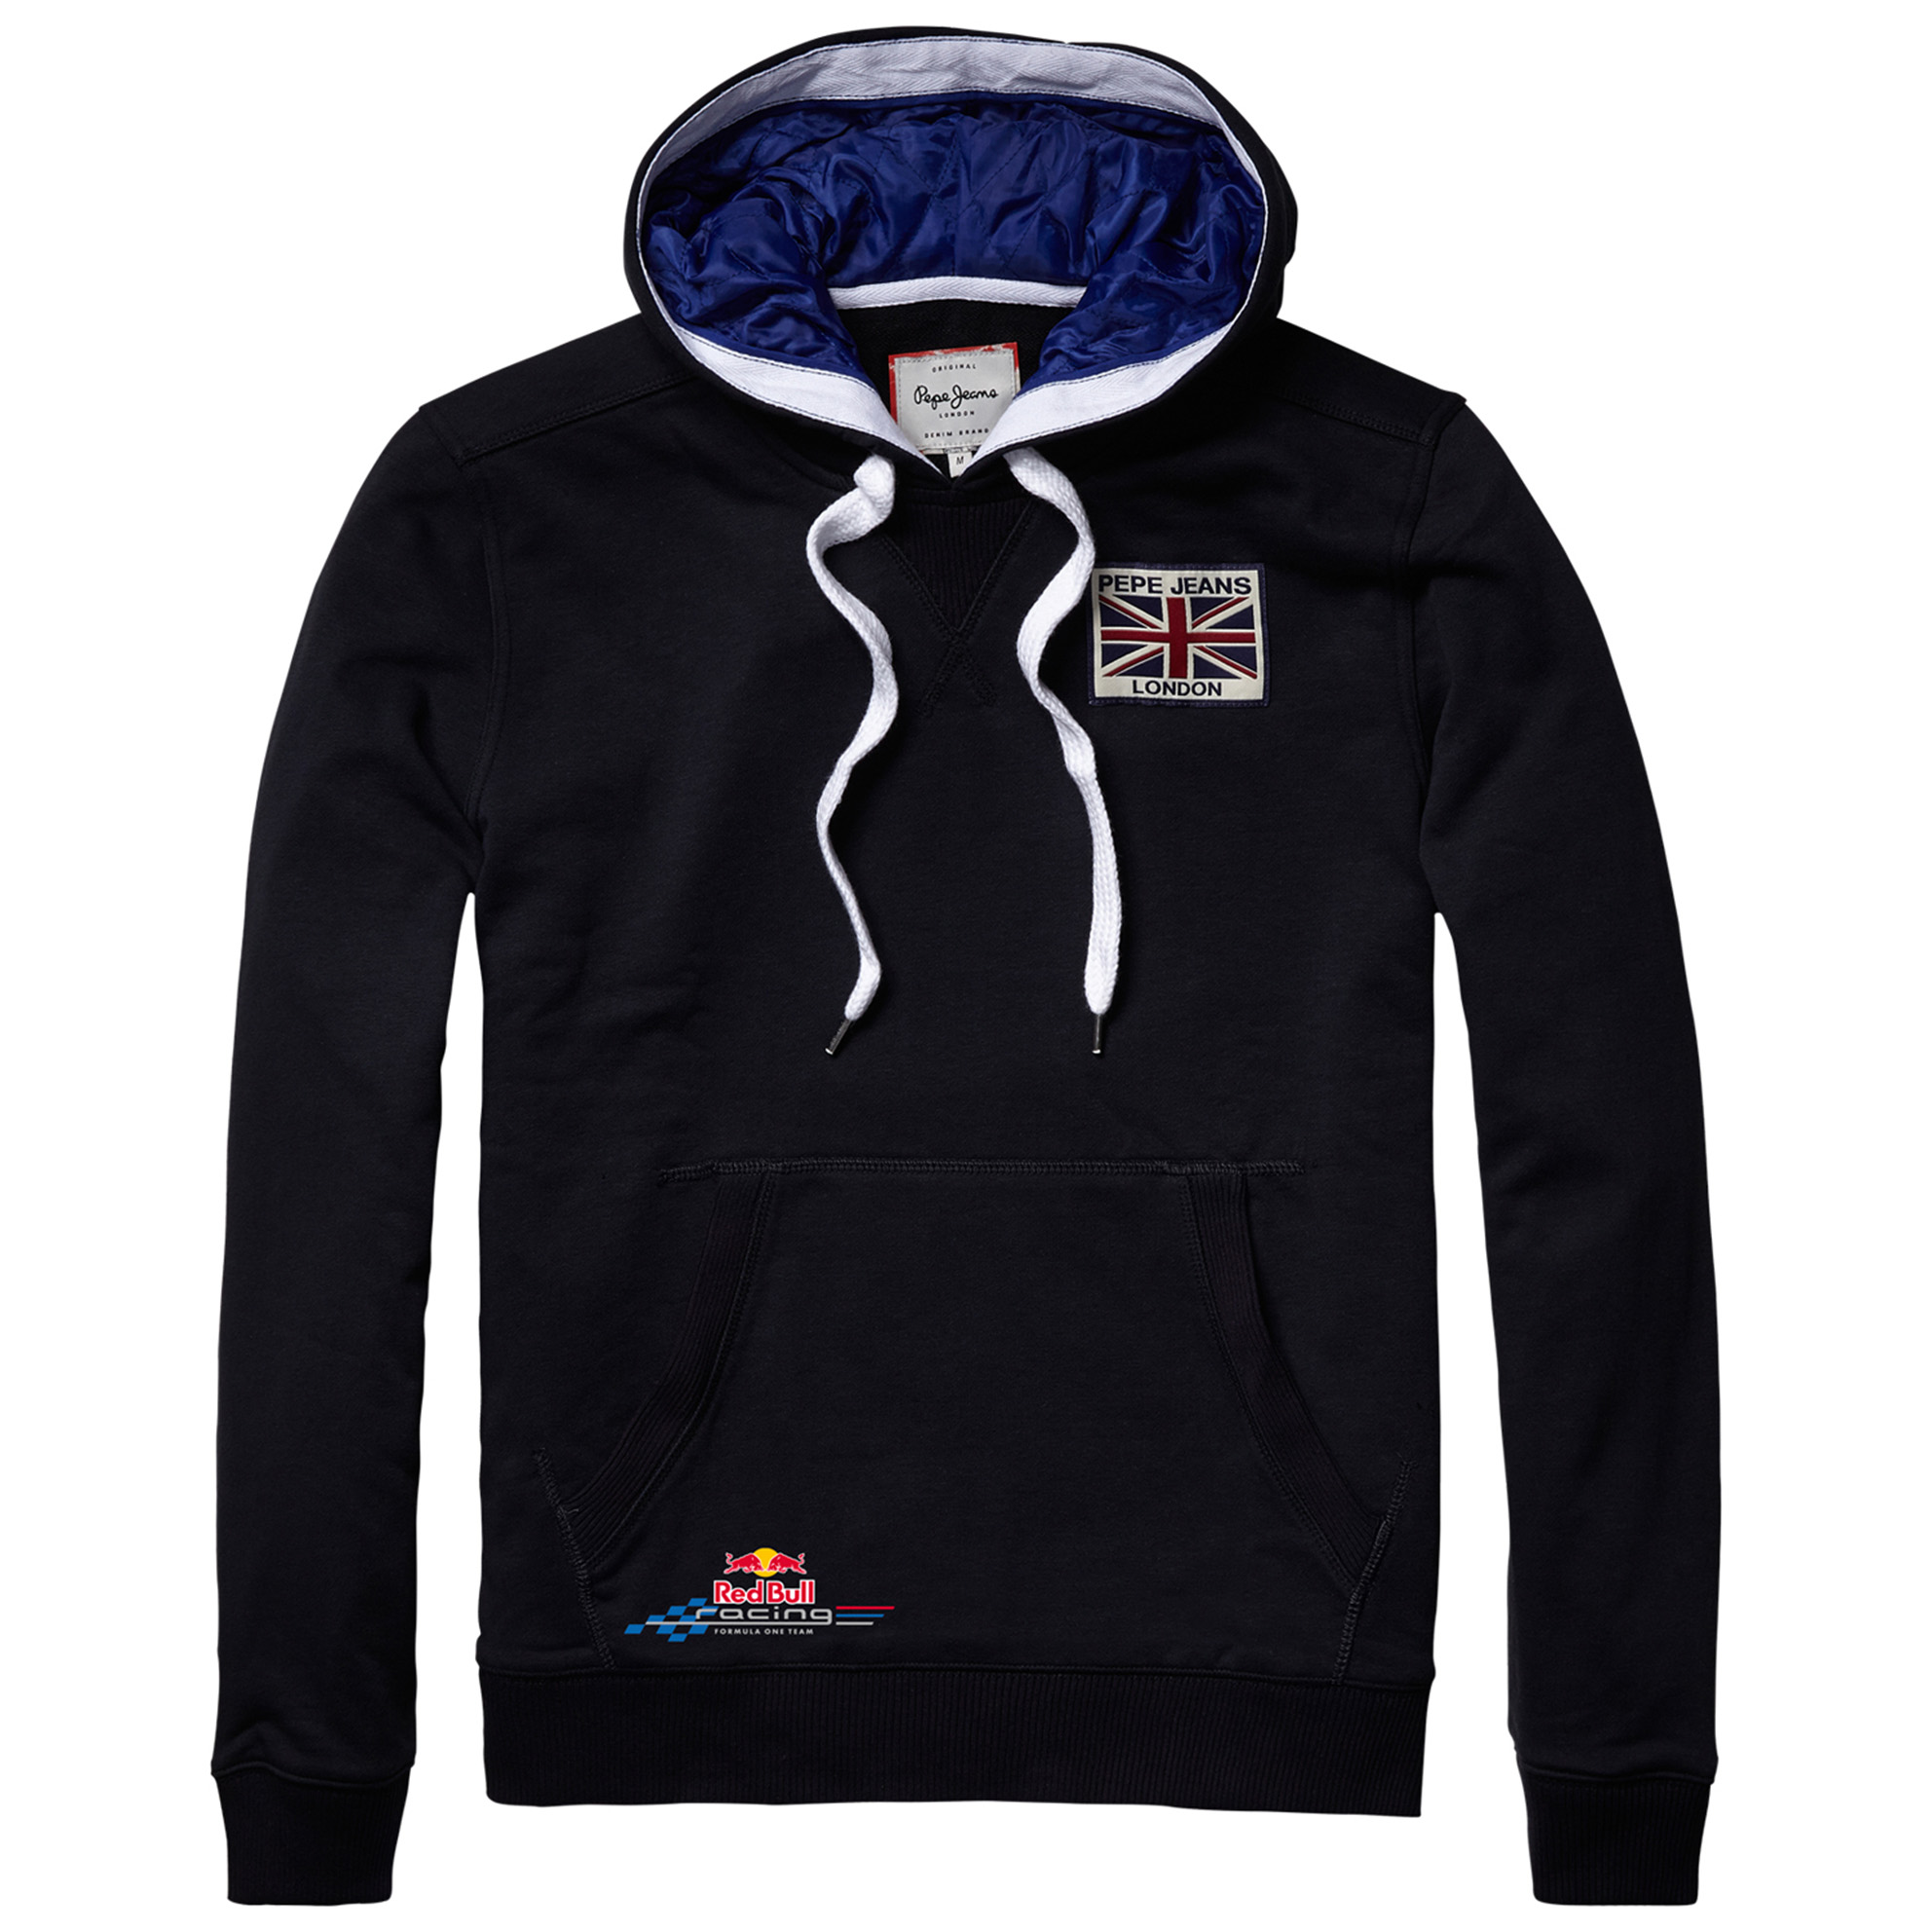 Infiniti Red Bull Racing by Pepe Jeans Wrench Hoodie